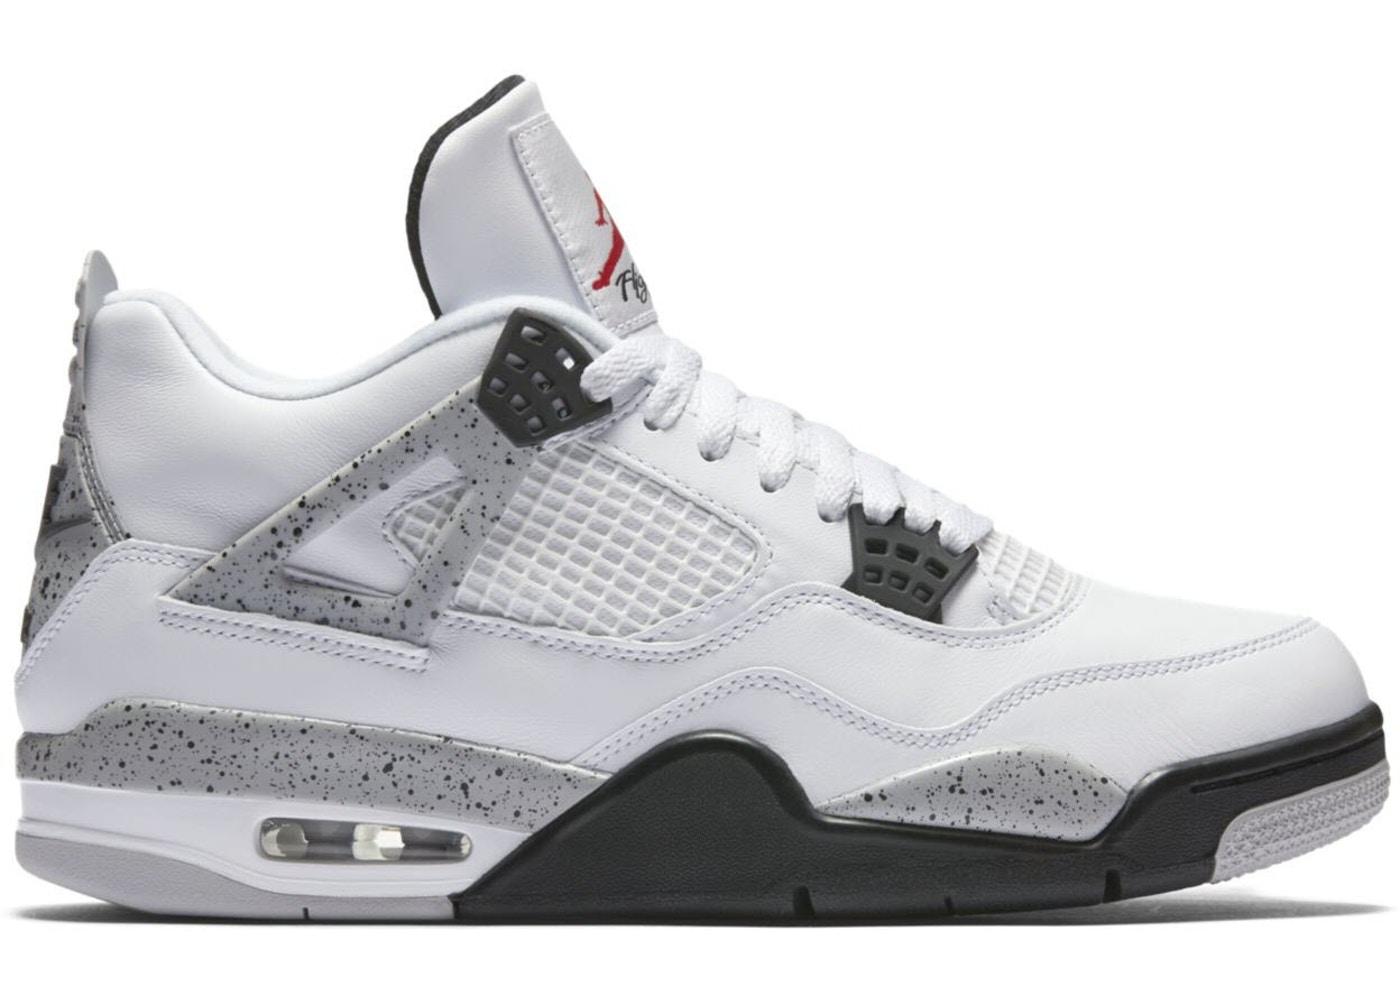 finest selection 16957 38c1d Jordan 4 Retro White Cement (2016) - 840606-192